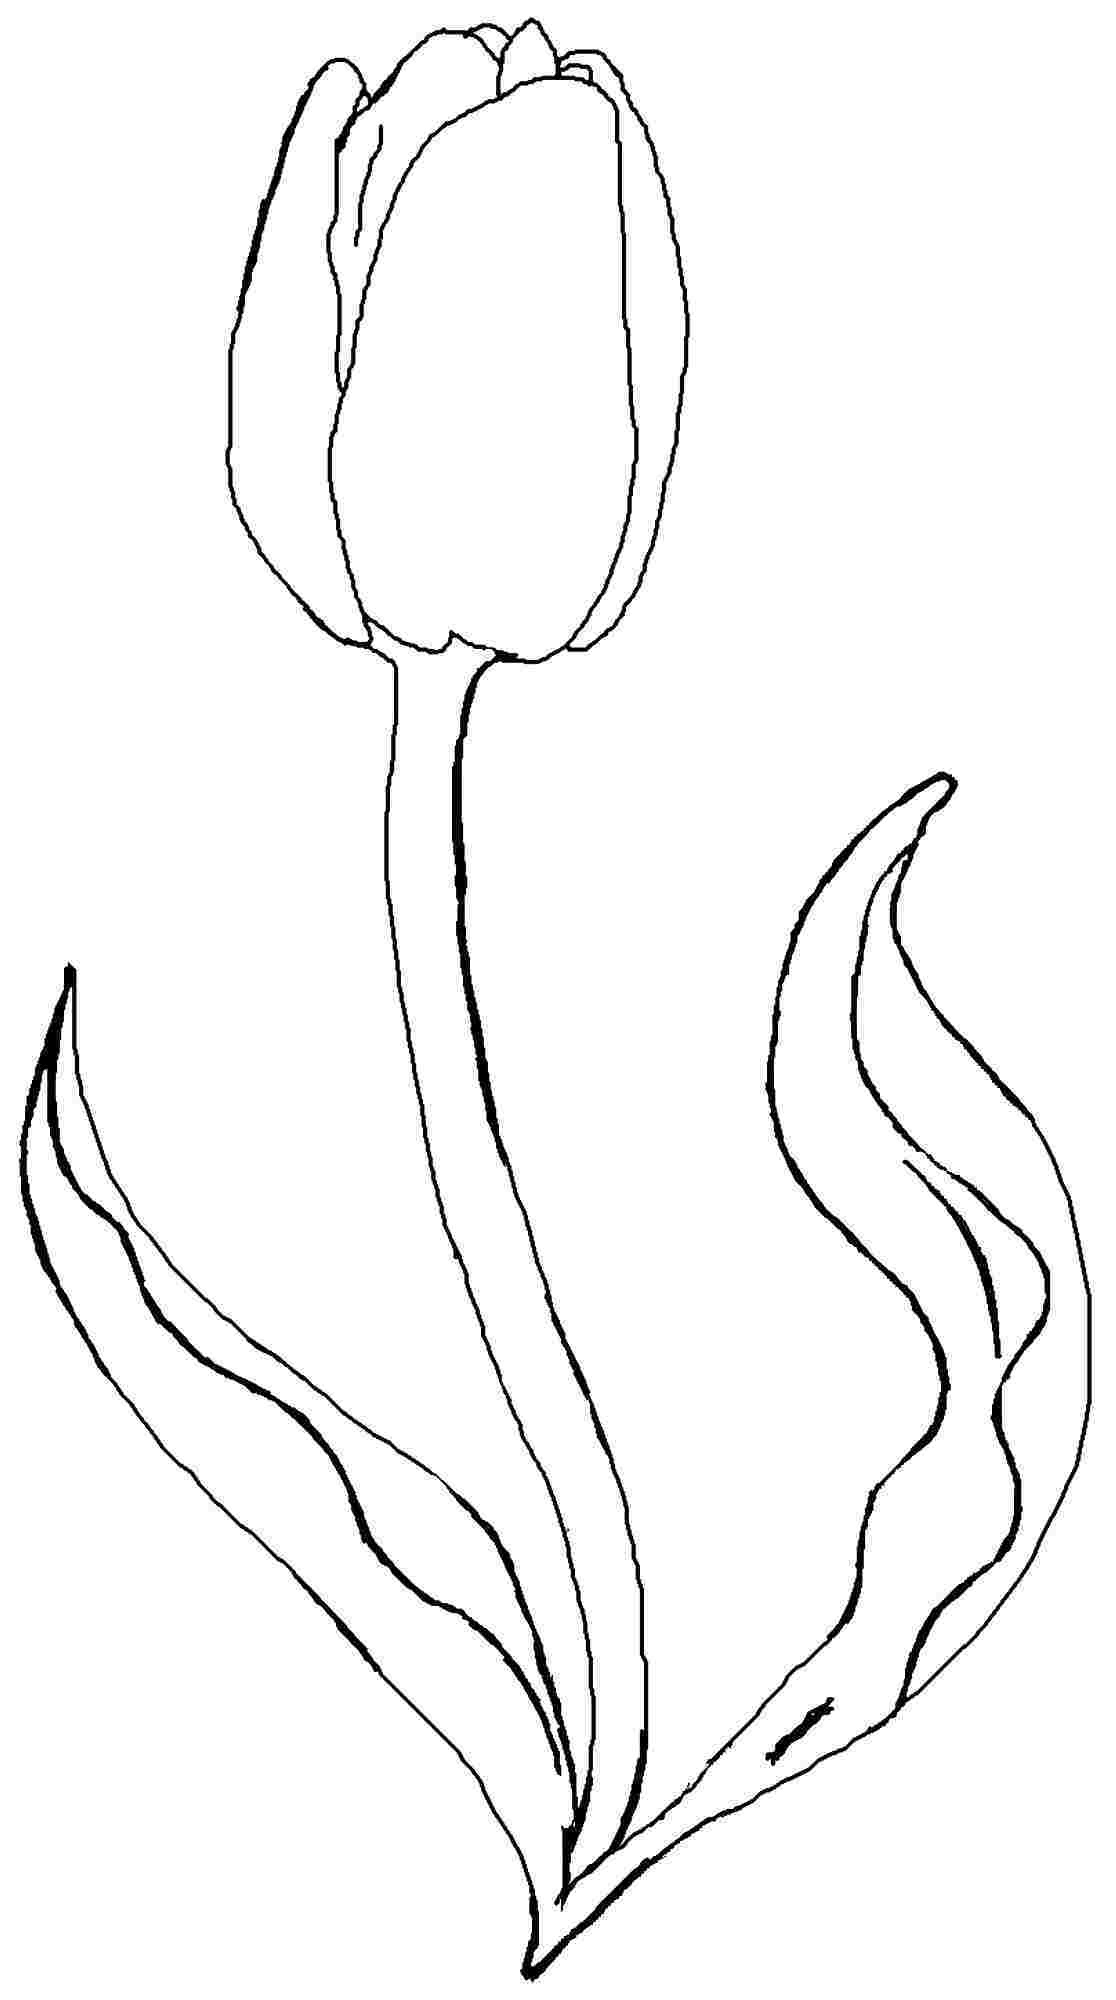 Tulips Coloring Pages. Christmas Presents Christmas Presents For - Free Printable Tulip Coloring Pages